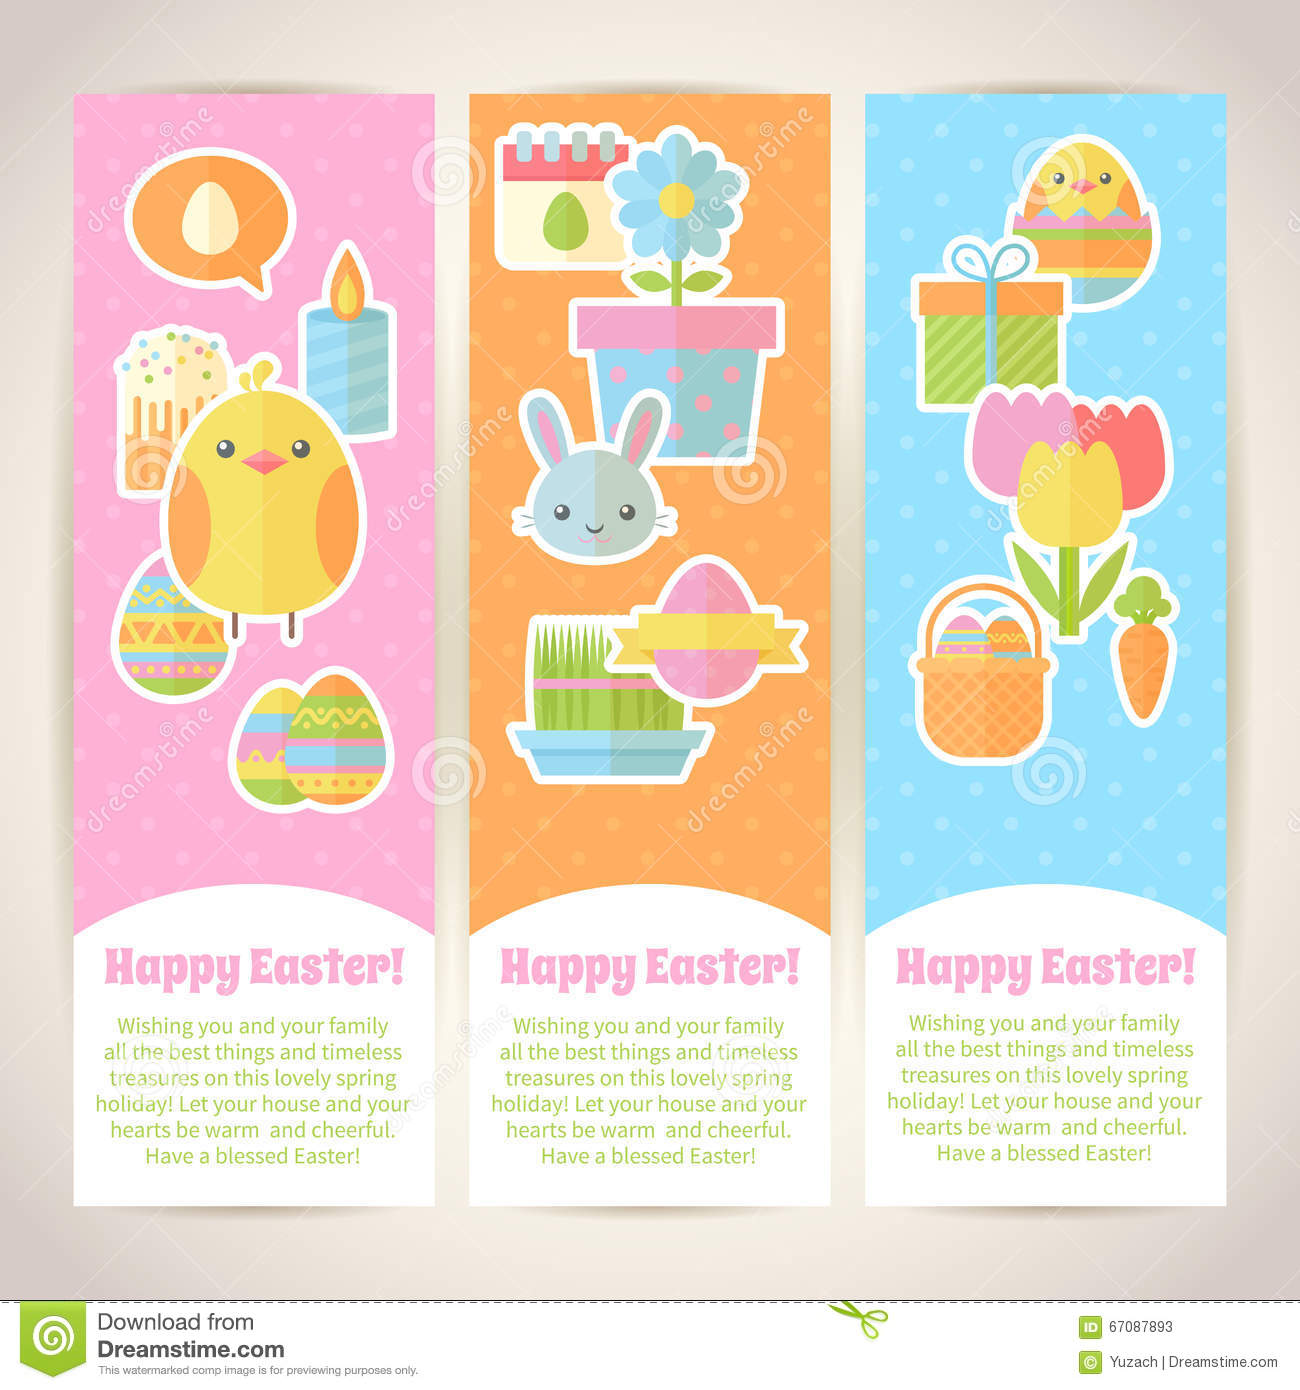 Colorful spring Easter flat banners set with bunnies chicken eggs D2KwDH2M